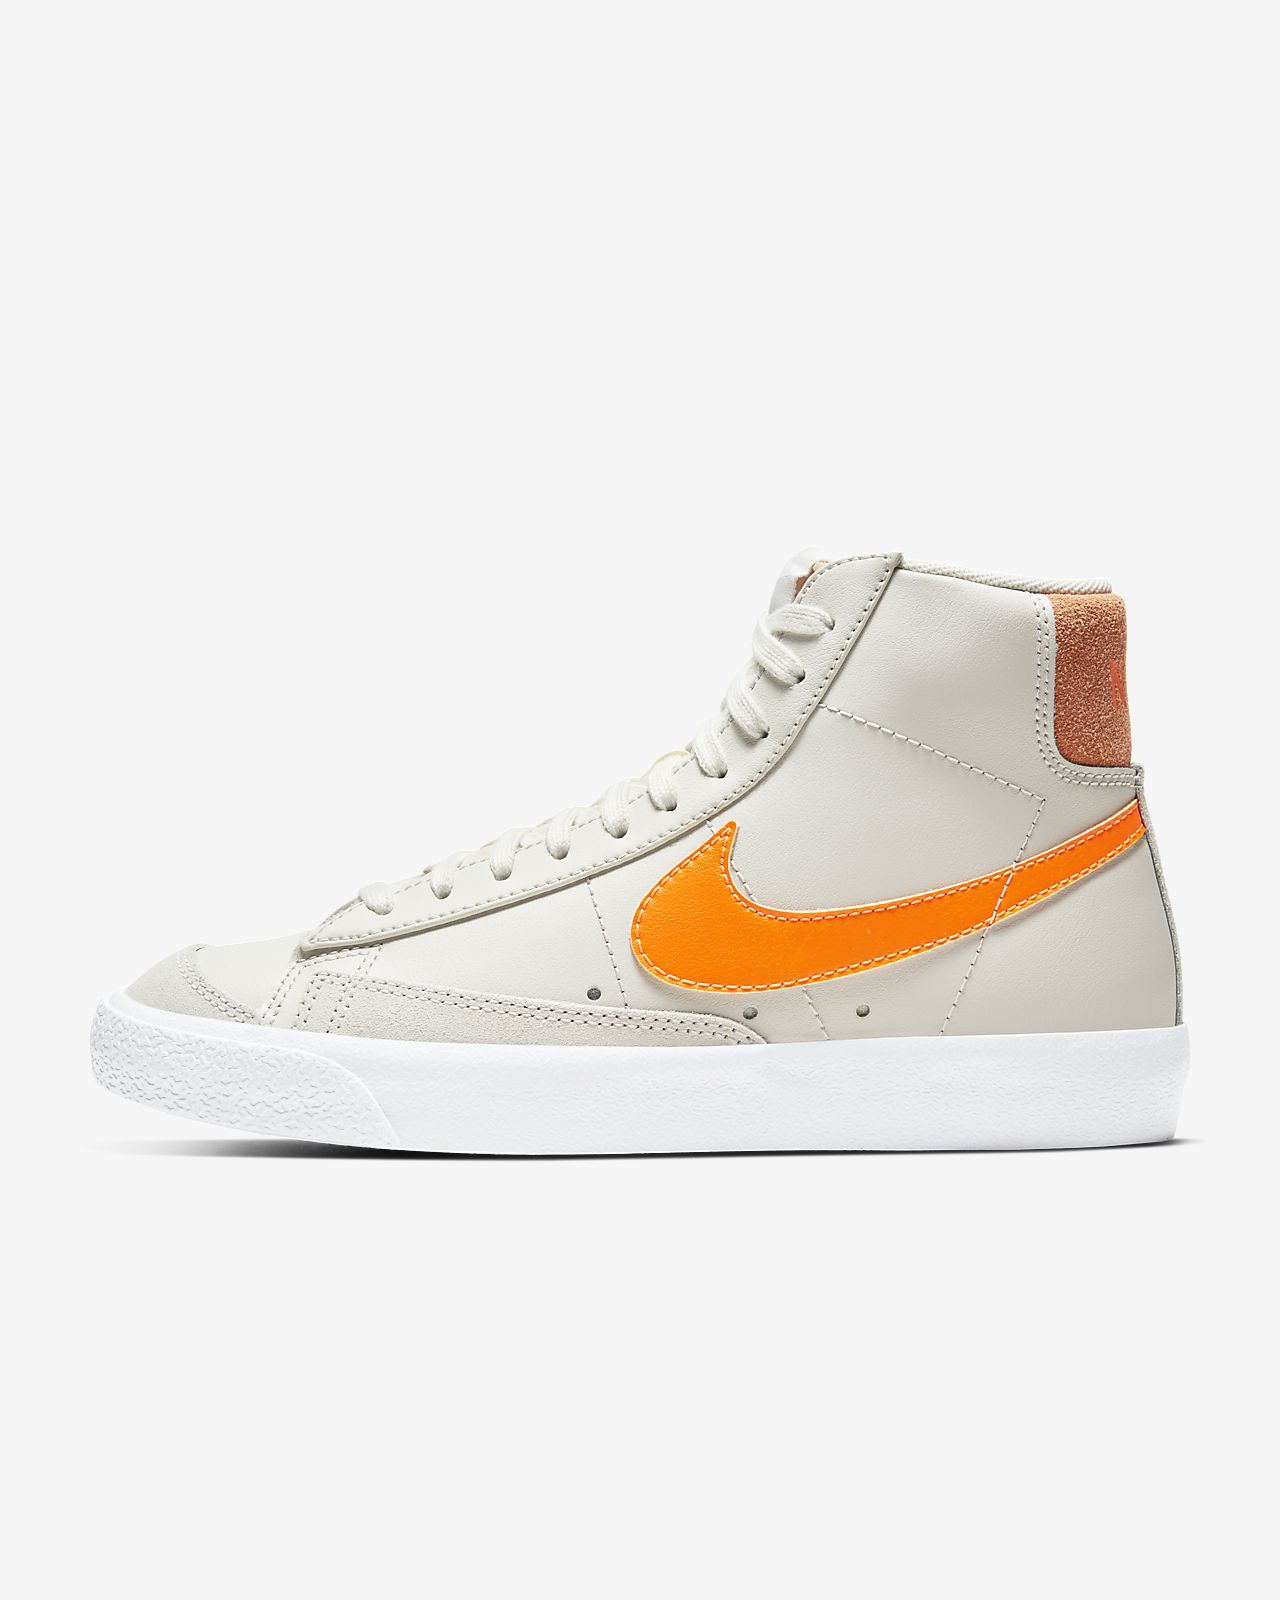 Chaussure Nike Blazer Mid '77 pour Femme